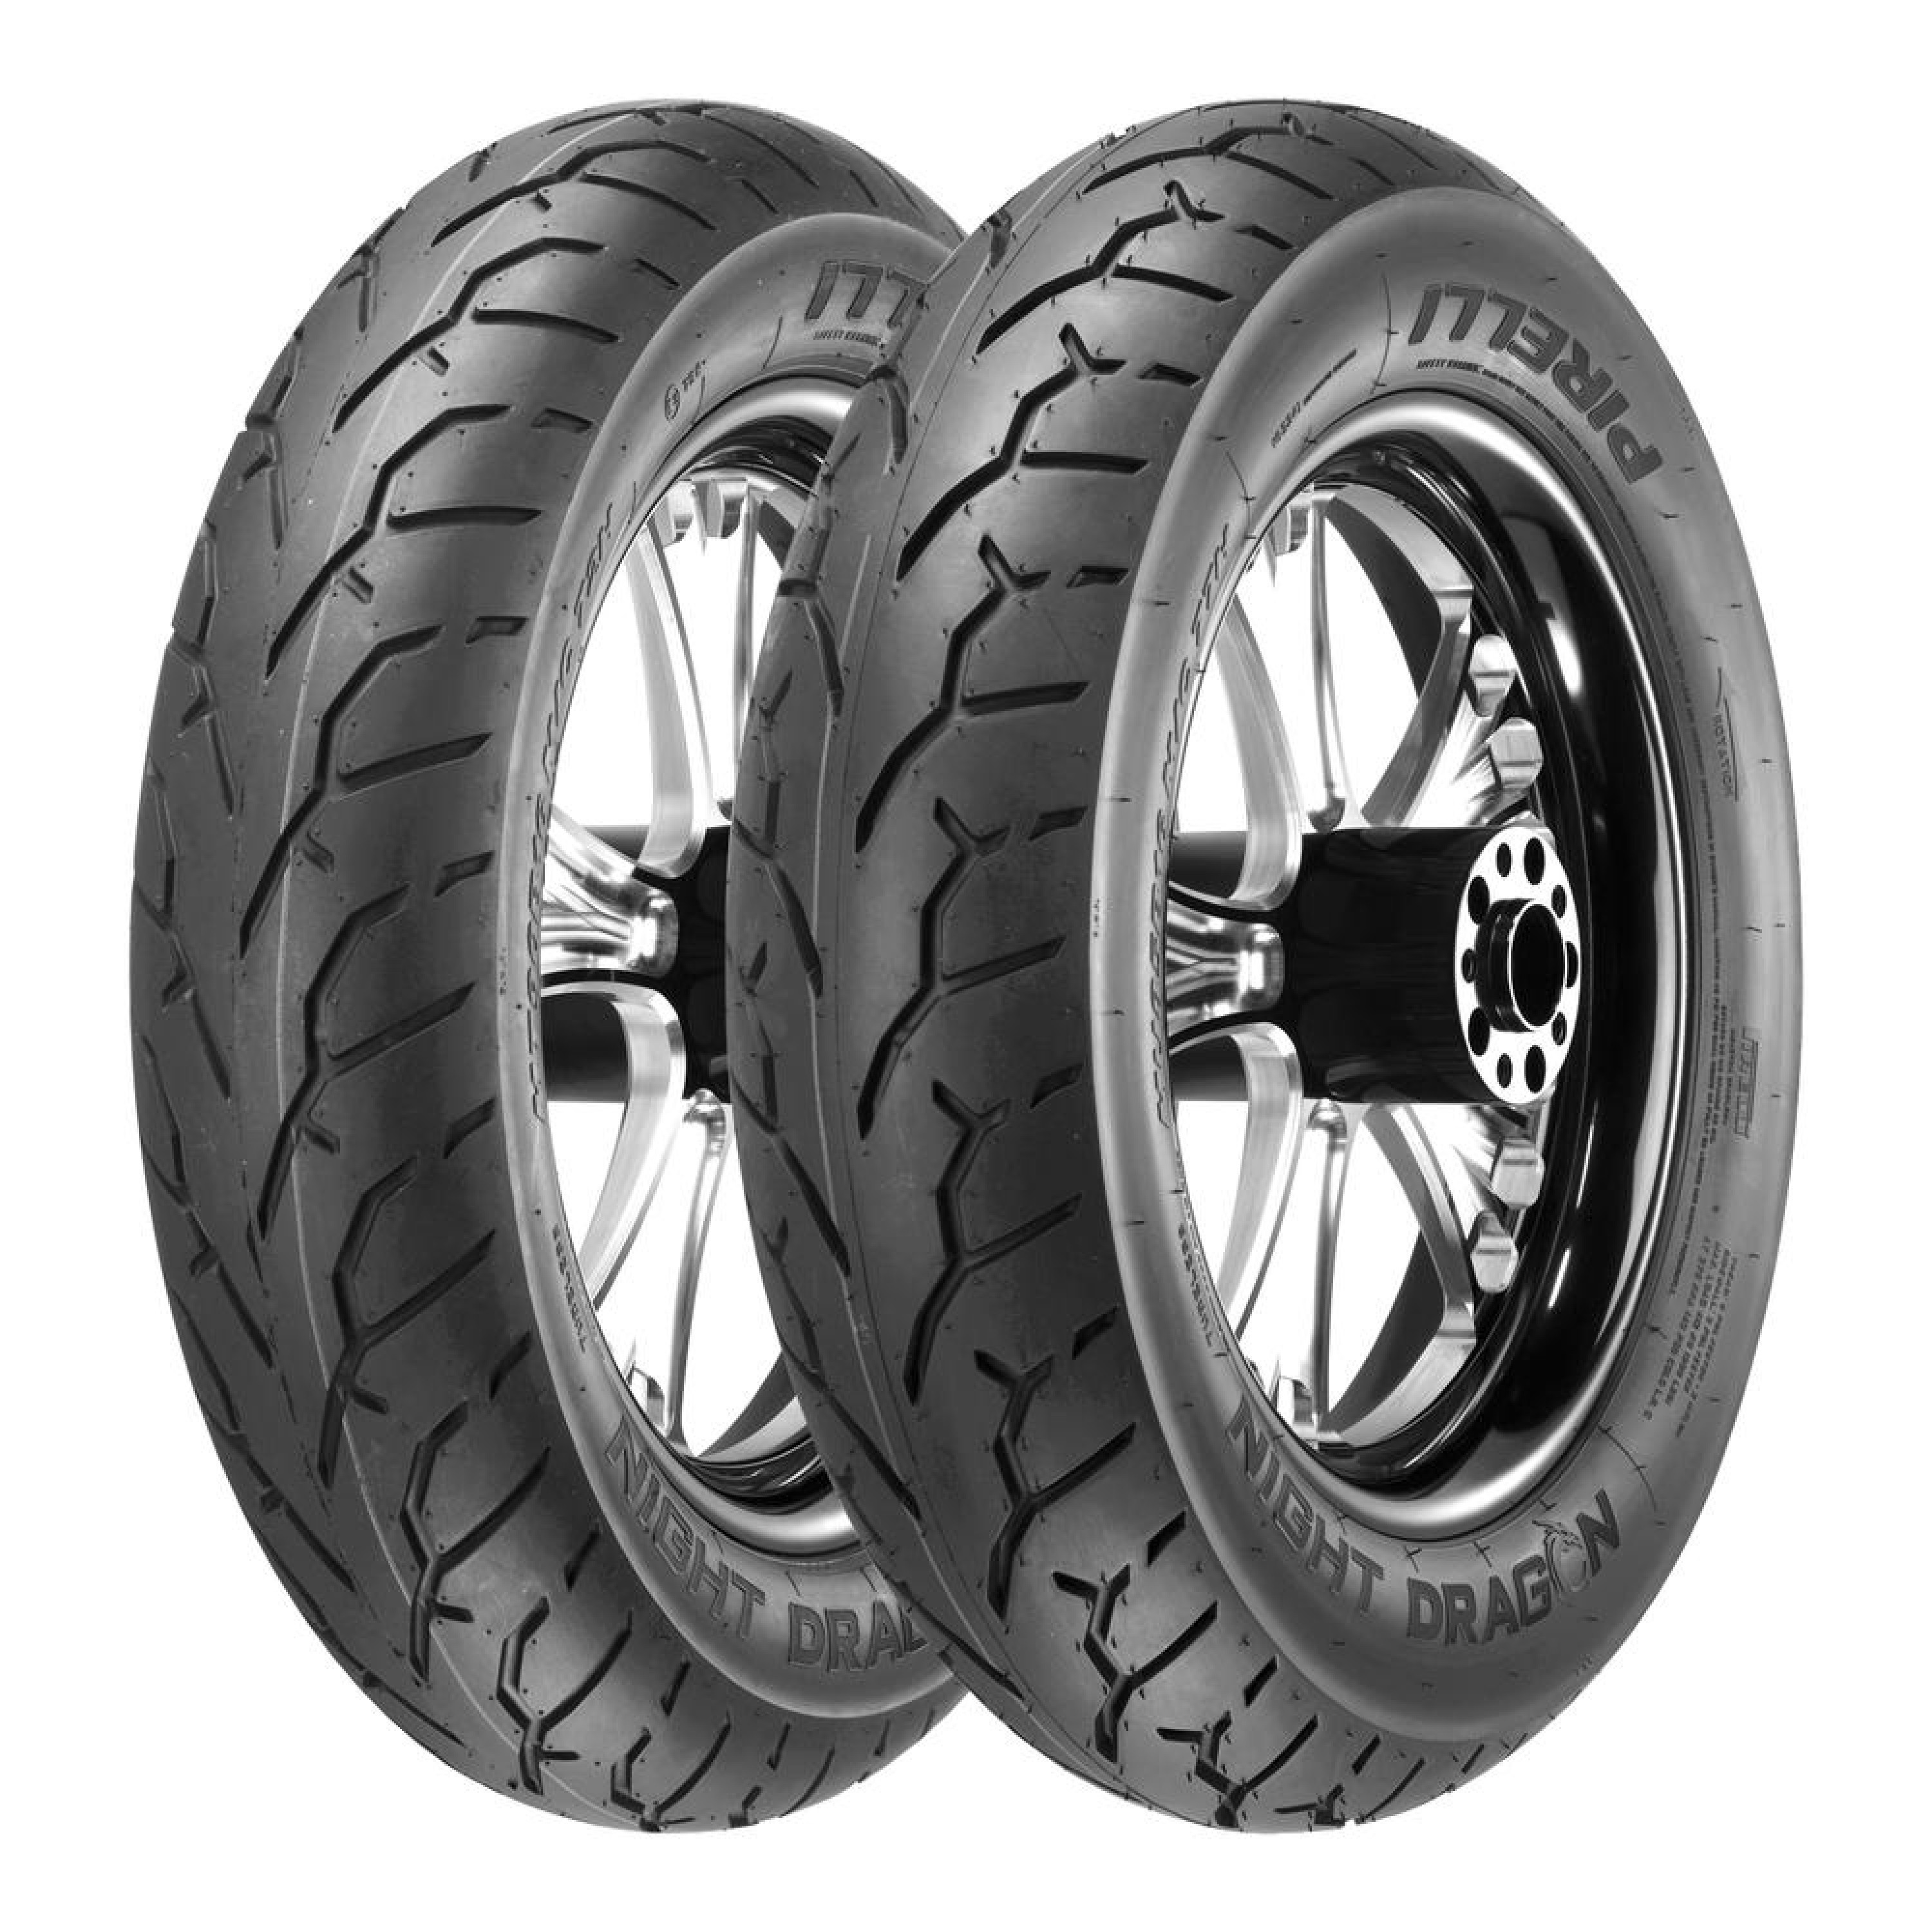 Pirelli Night Dragon 140/80-17 Fram